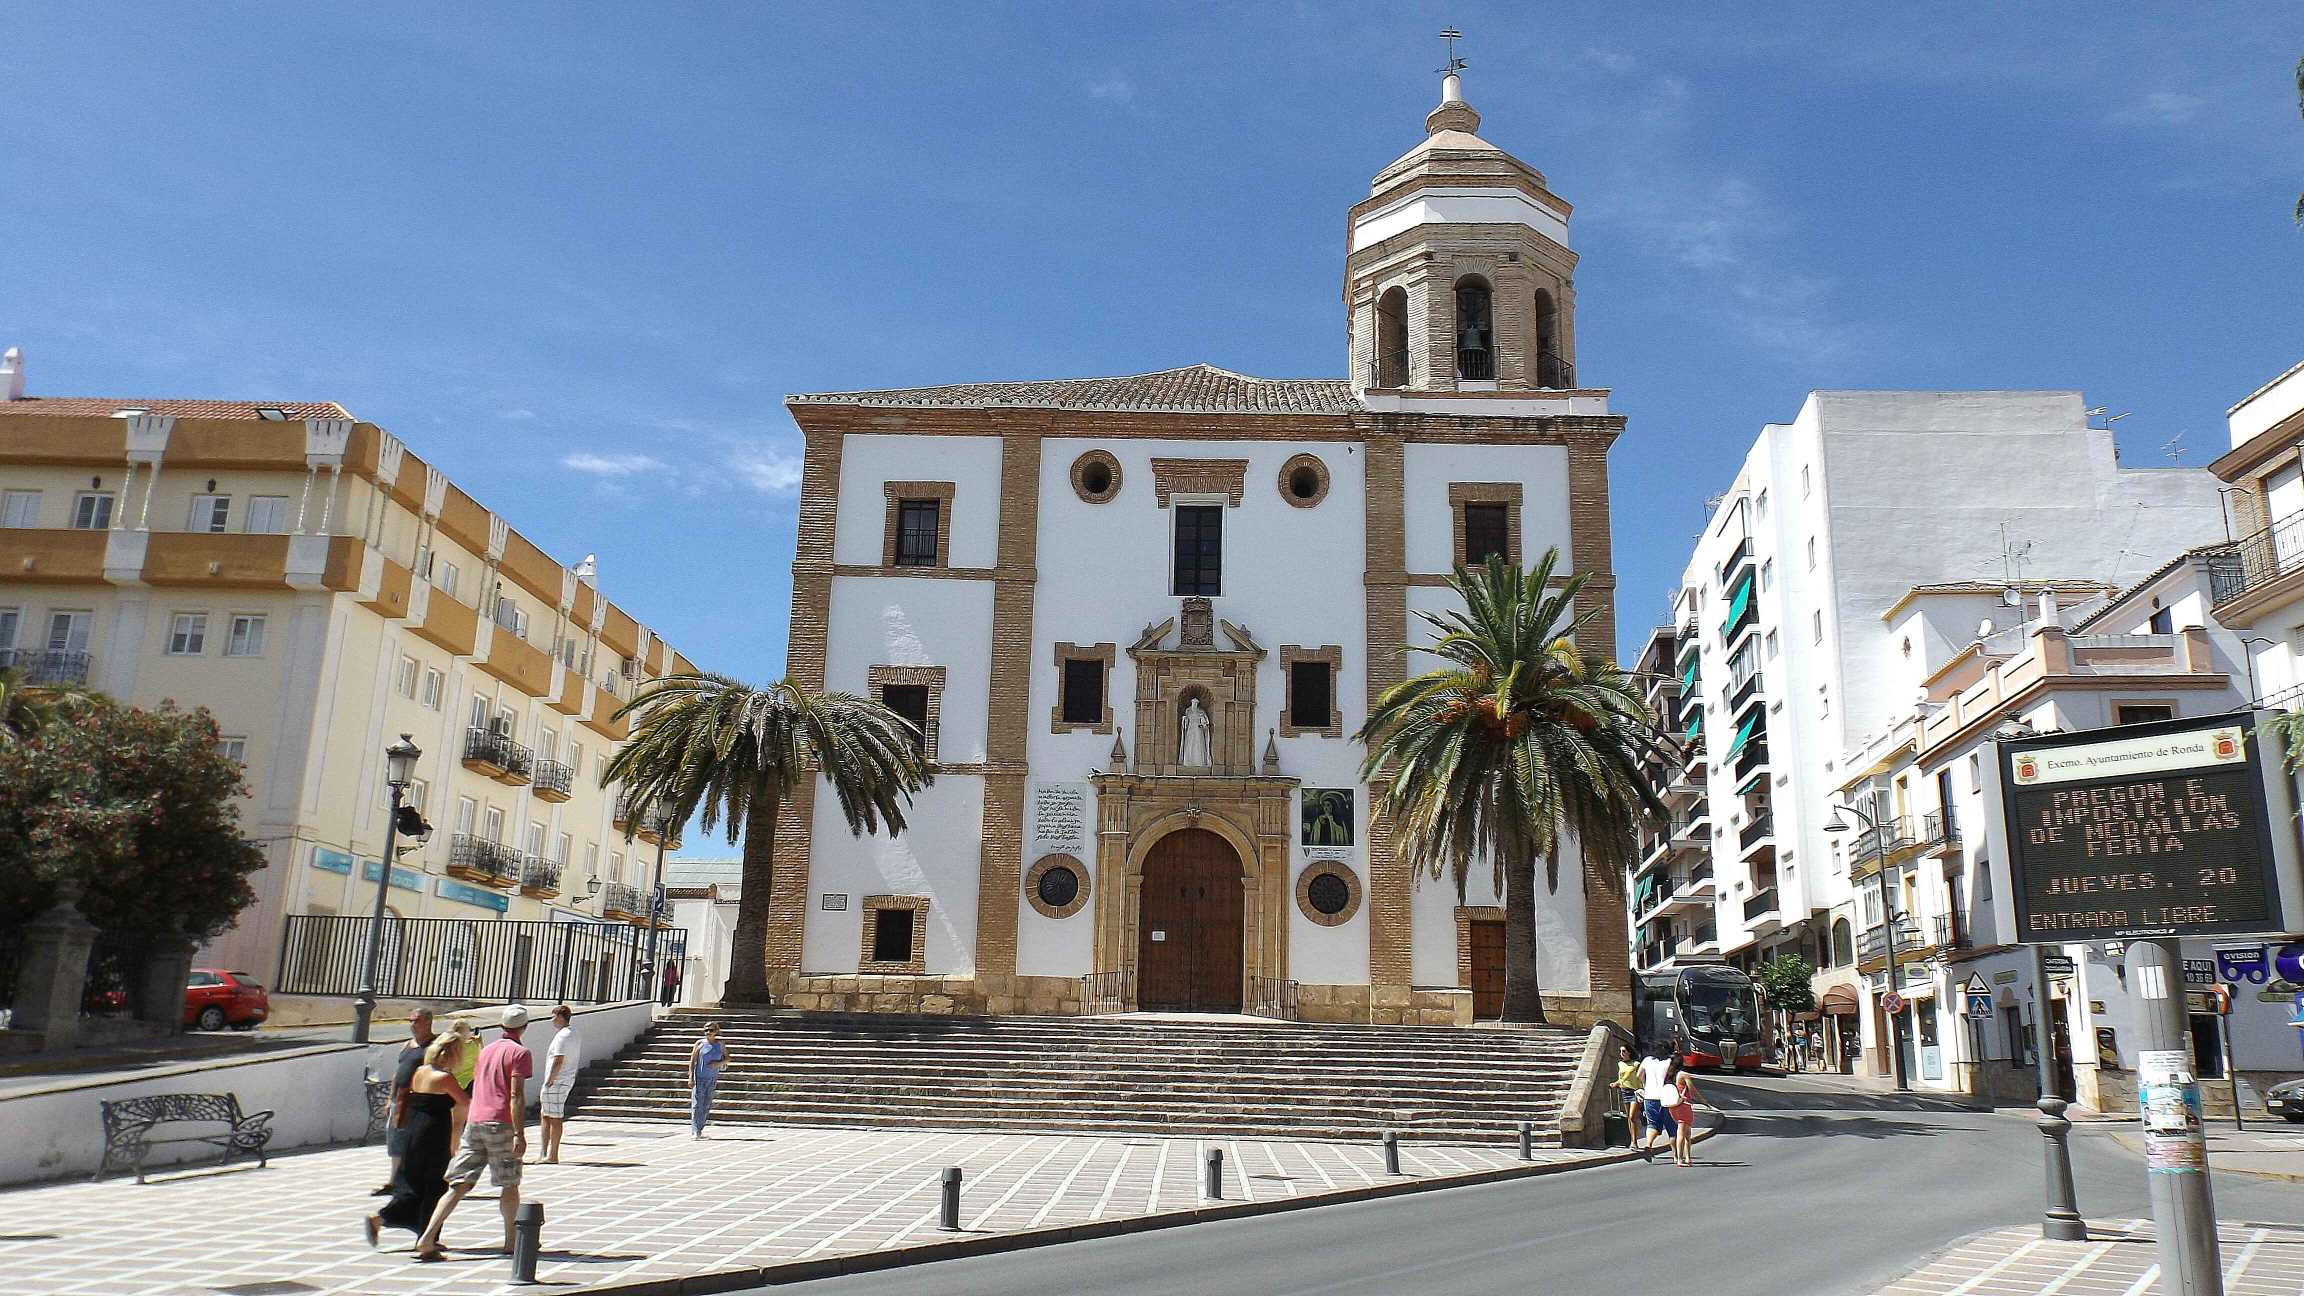 Church of our lady of mercy Round, Ronda, Spain